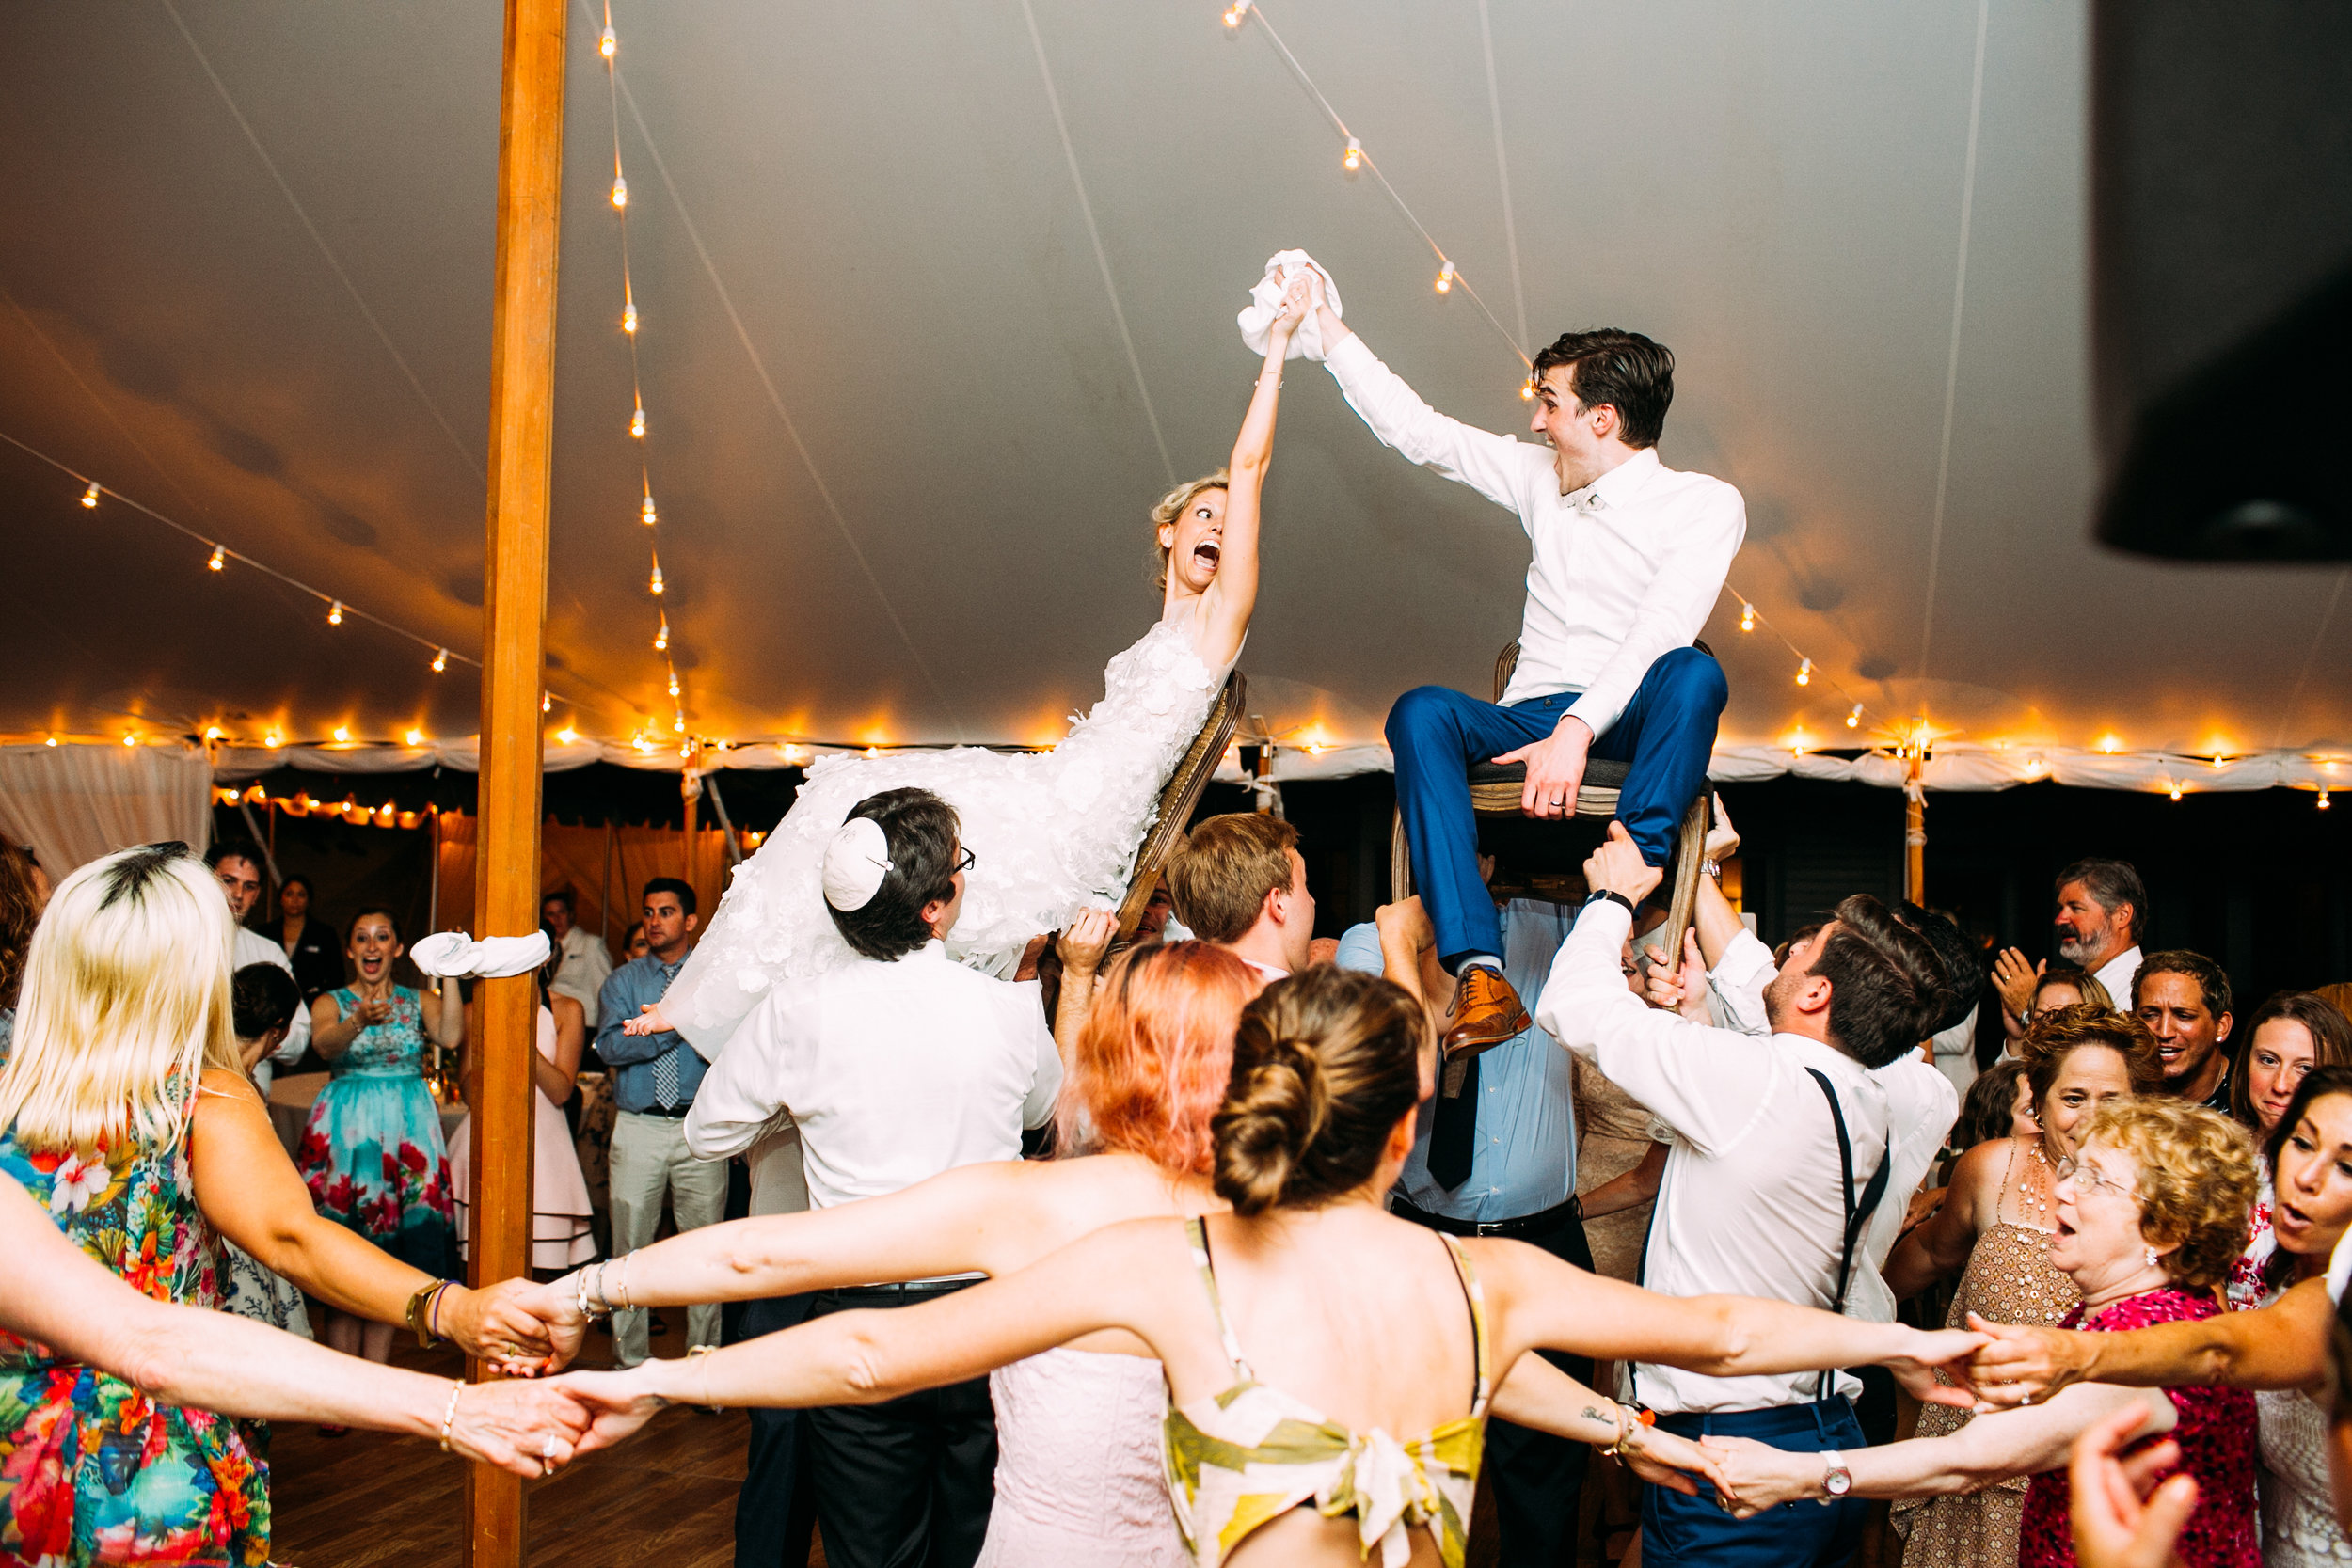 katie stoops photography-inn at perry cabin wedding45.jpg